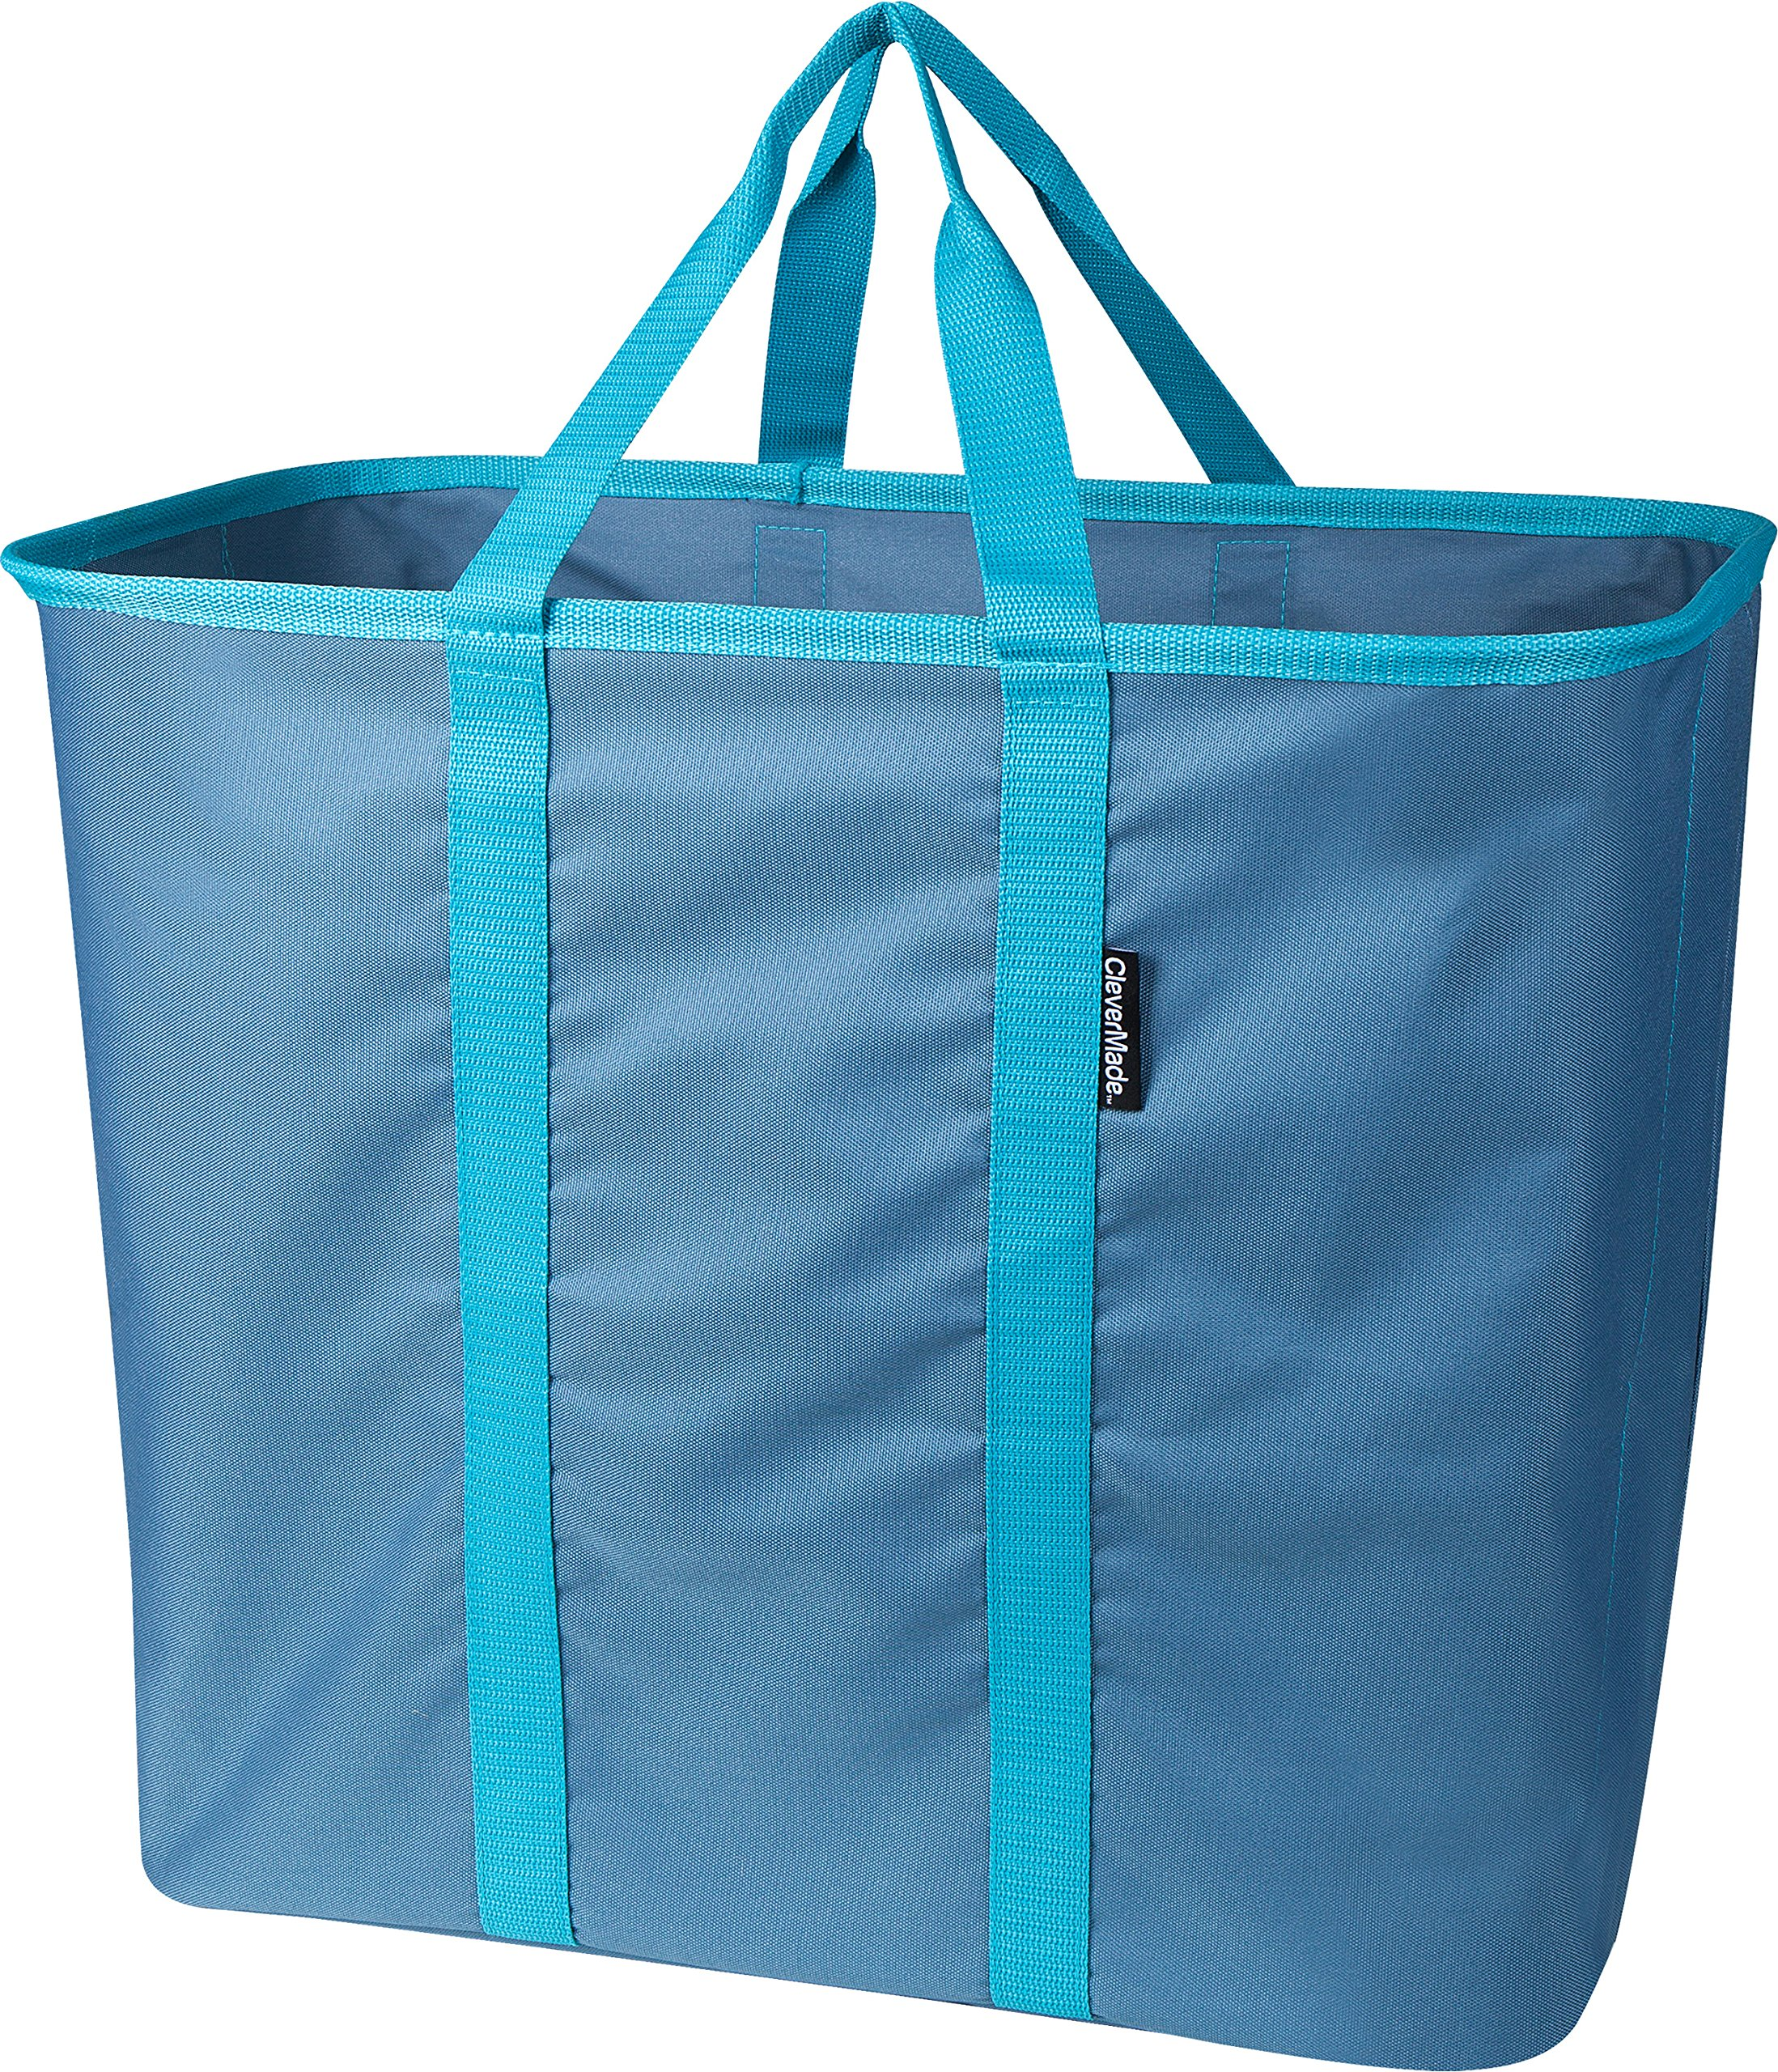 CleverMade Collapsible Laundry Basket, Large Foldable Clothes Hamper Bag, SnapBasket LaundryCaddy CarryAll Pop Up Storage Tote, Blue/Dusty Teal